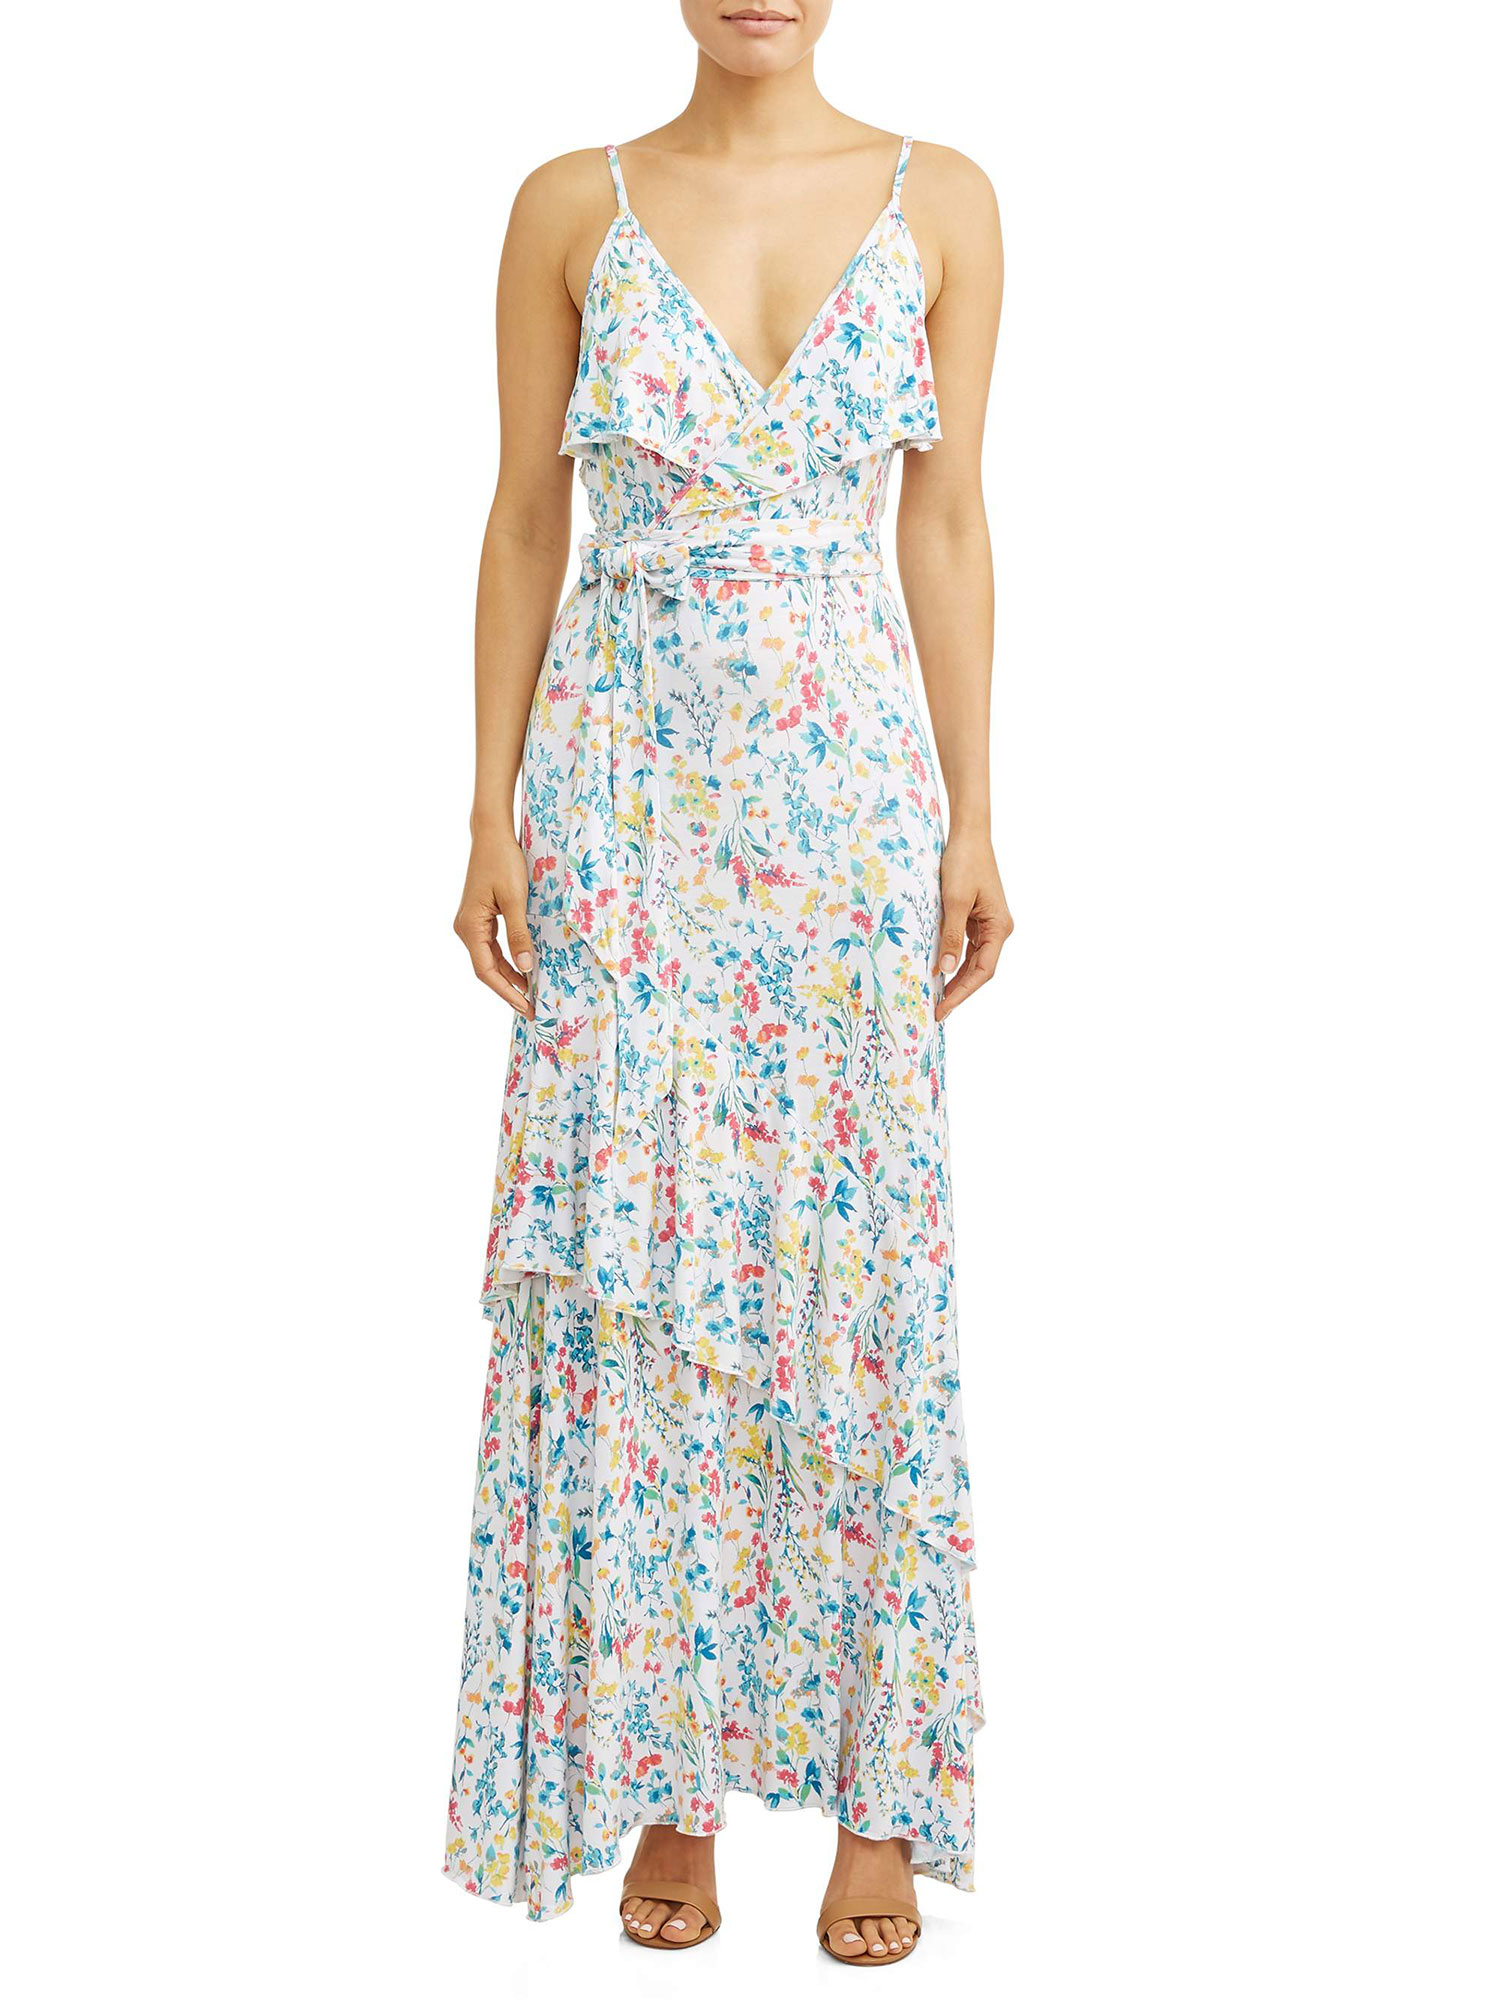 Sofia Vergara Spring Collection walmart - Flattering for any shape and size, this floral maxi is the dress we've been missing. $37.50, walmart.com